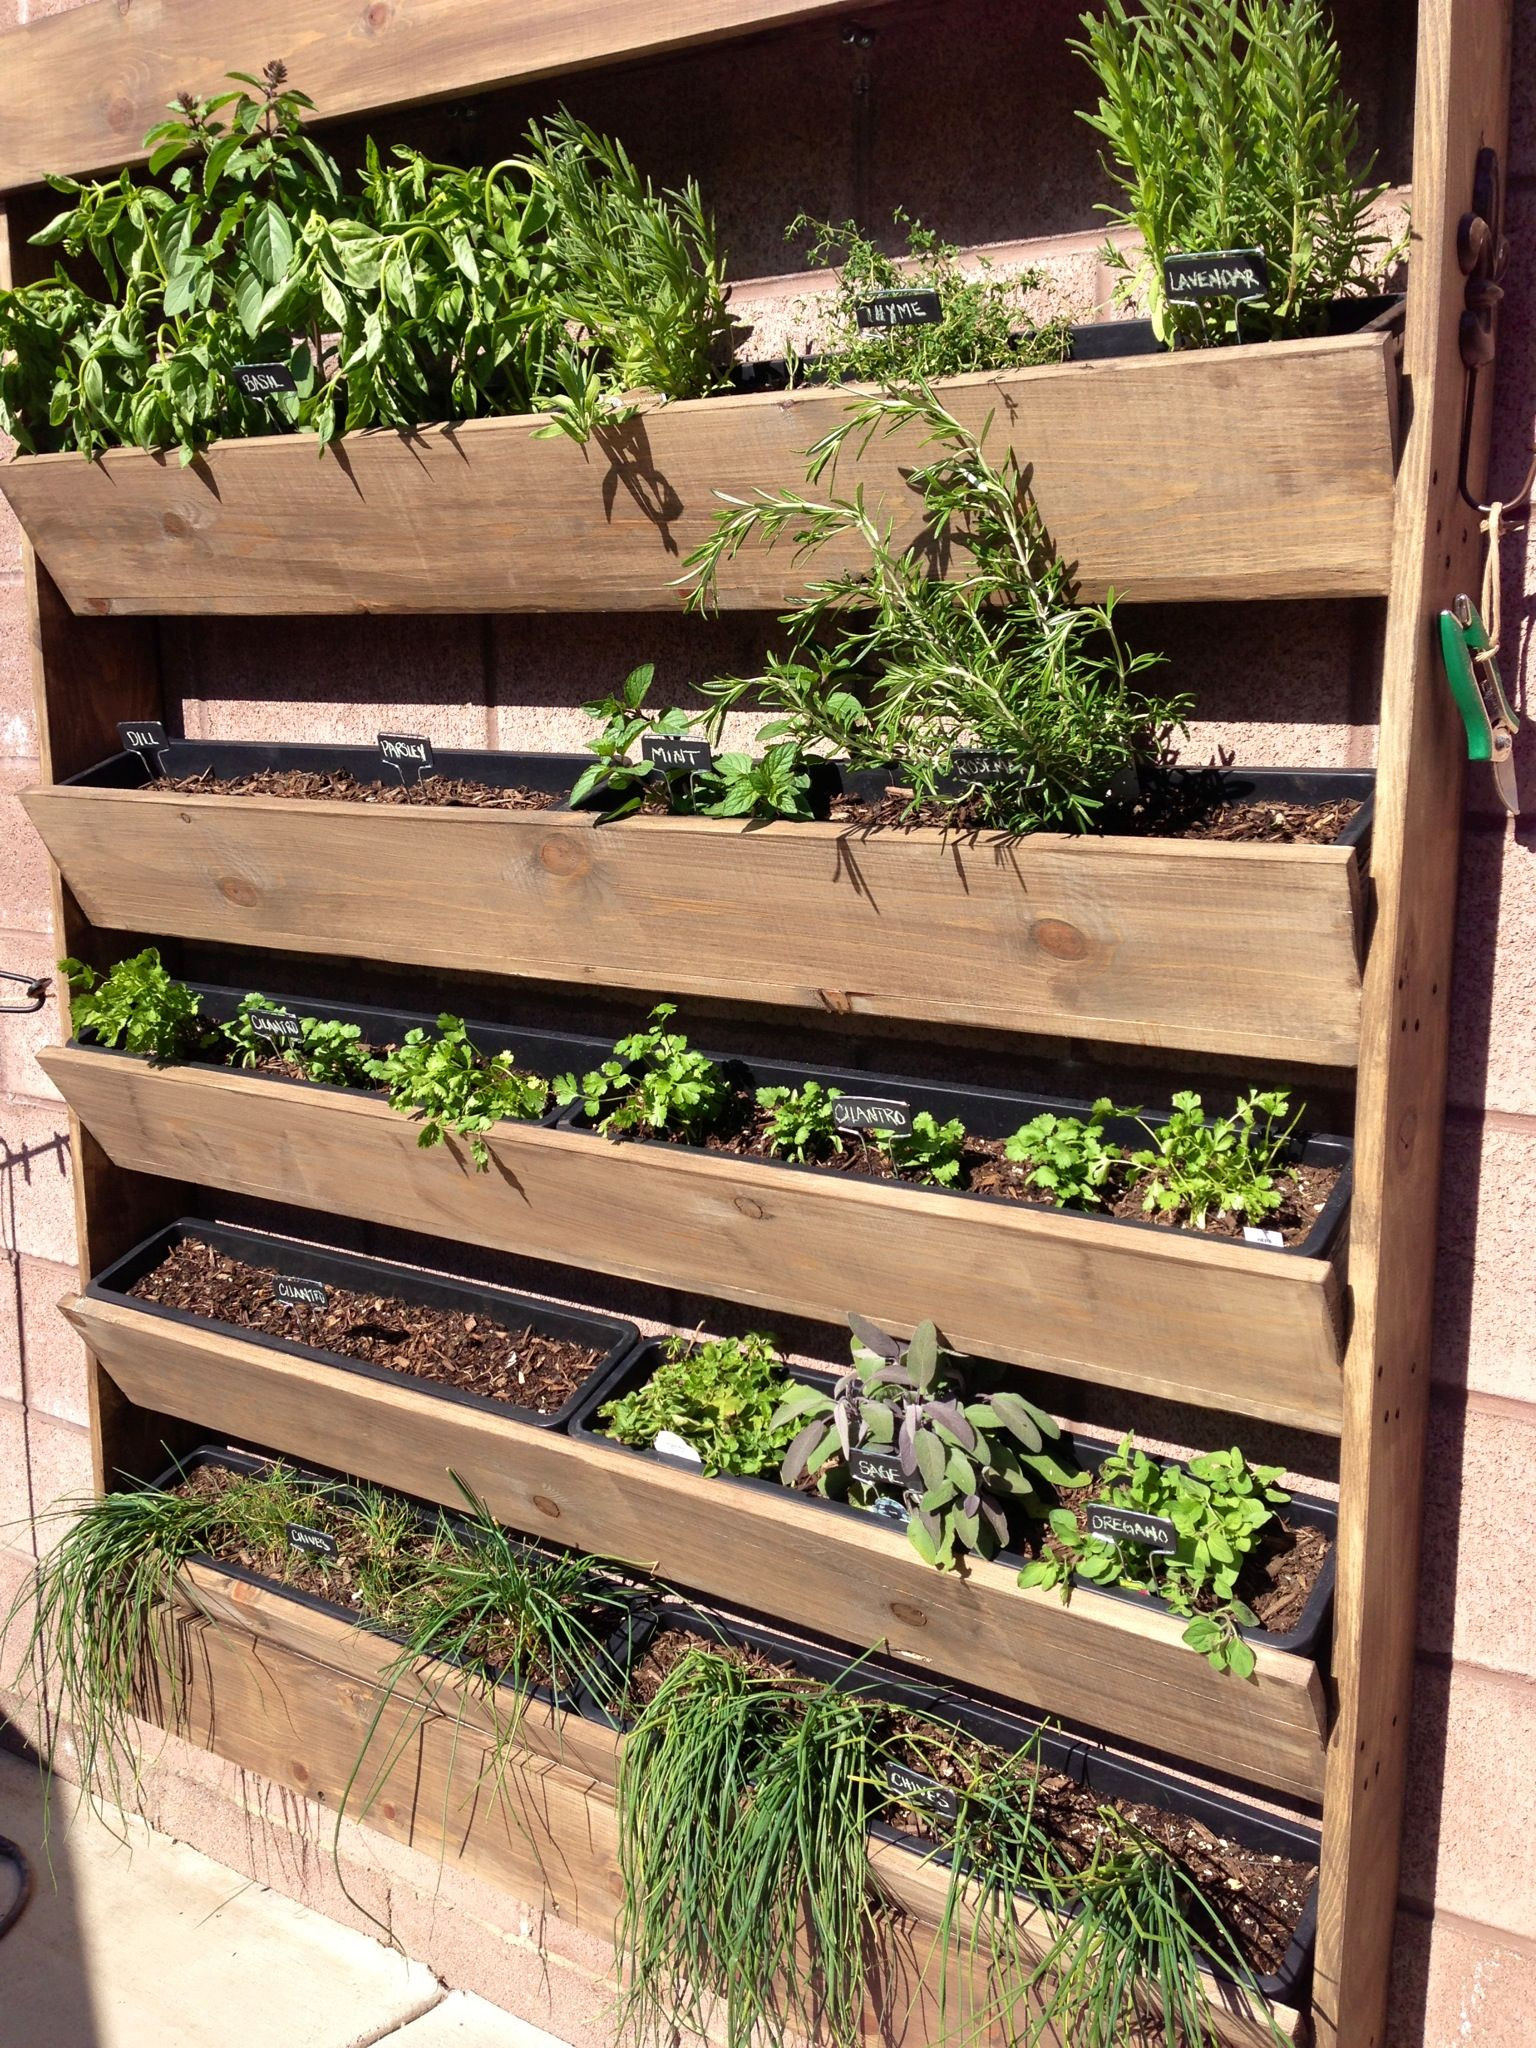 Herb Wall Planter Garden Easiest Version Build Shelves For The Plastic Planters